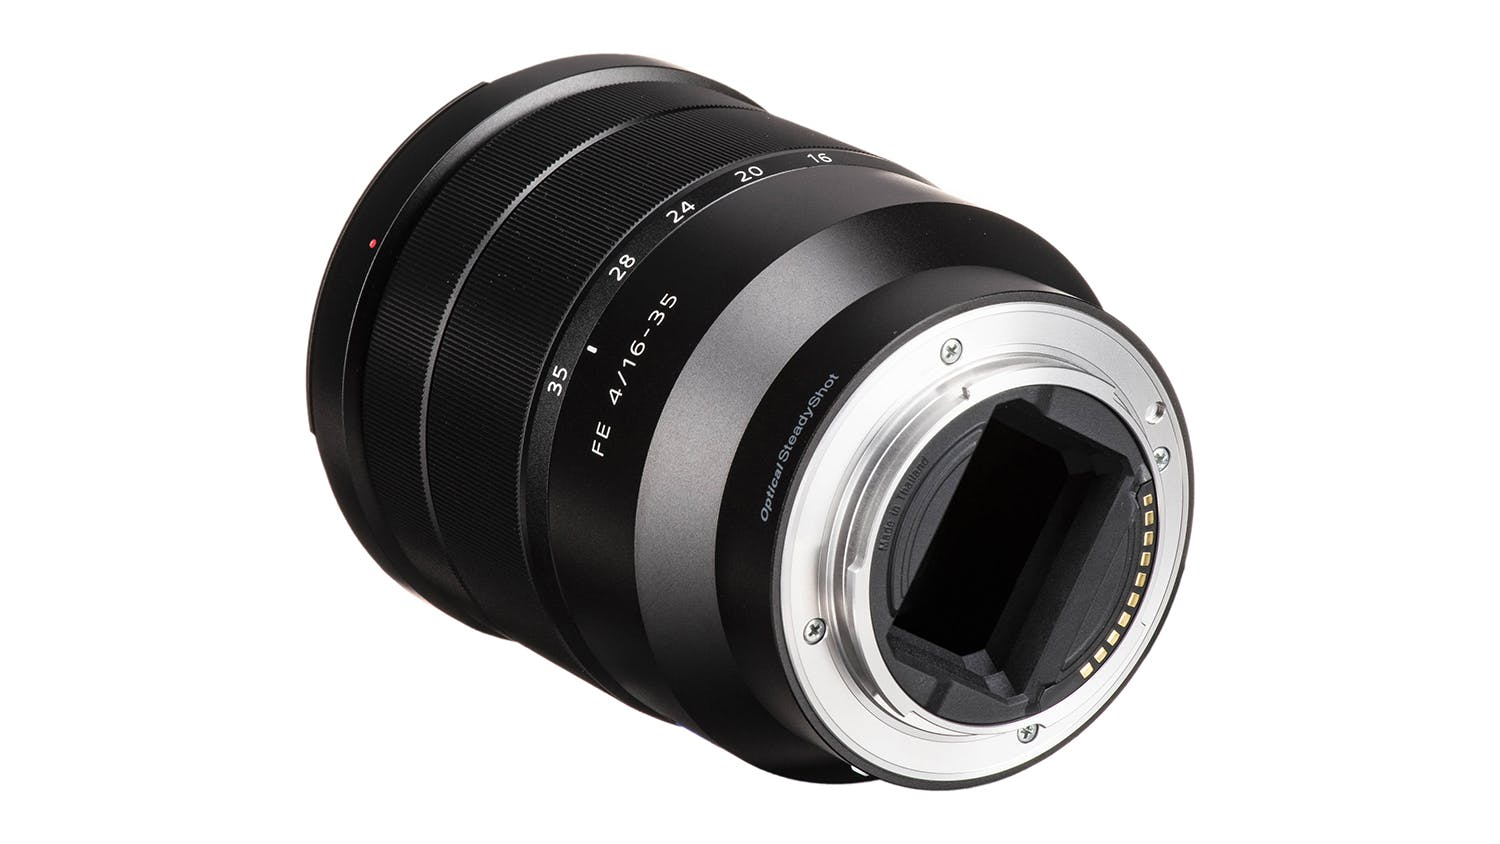 Sony FE 16-35mm f/4 Zeiss OSS Lens